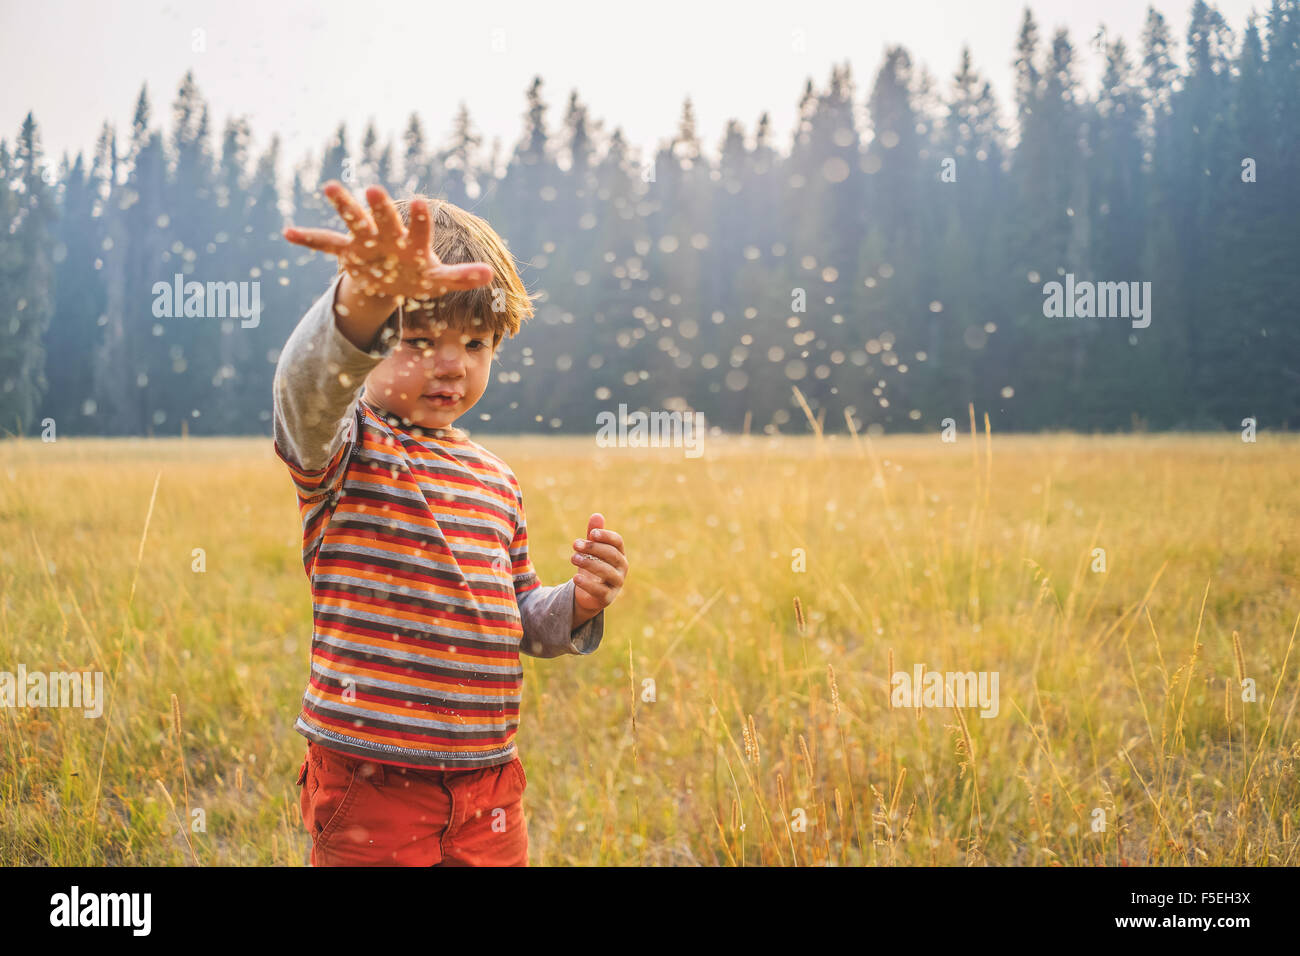 Boy throwing seeds in a field - Stock Image